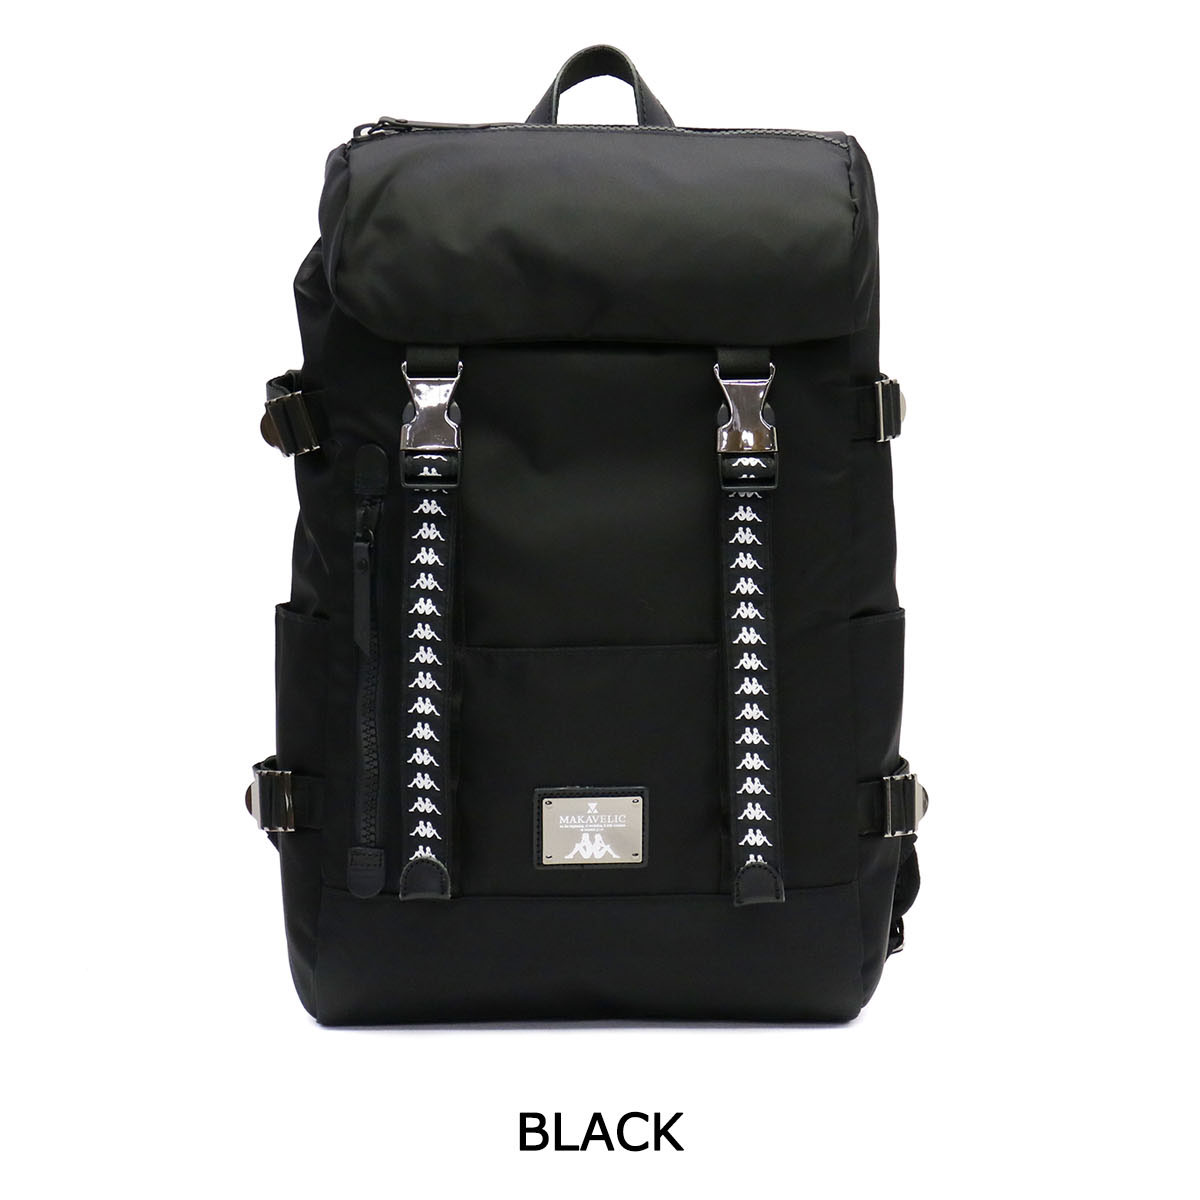 1437d0ad68 ... MAKAVELIC backpack MAKAVELIC X Kappa DOUBLE BELT BACKPACK limited B4  men s ladies KL 918 BA 02 ...